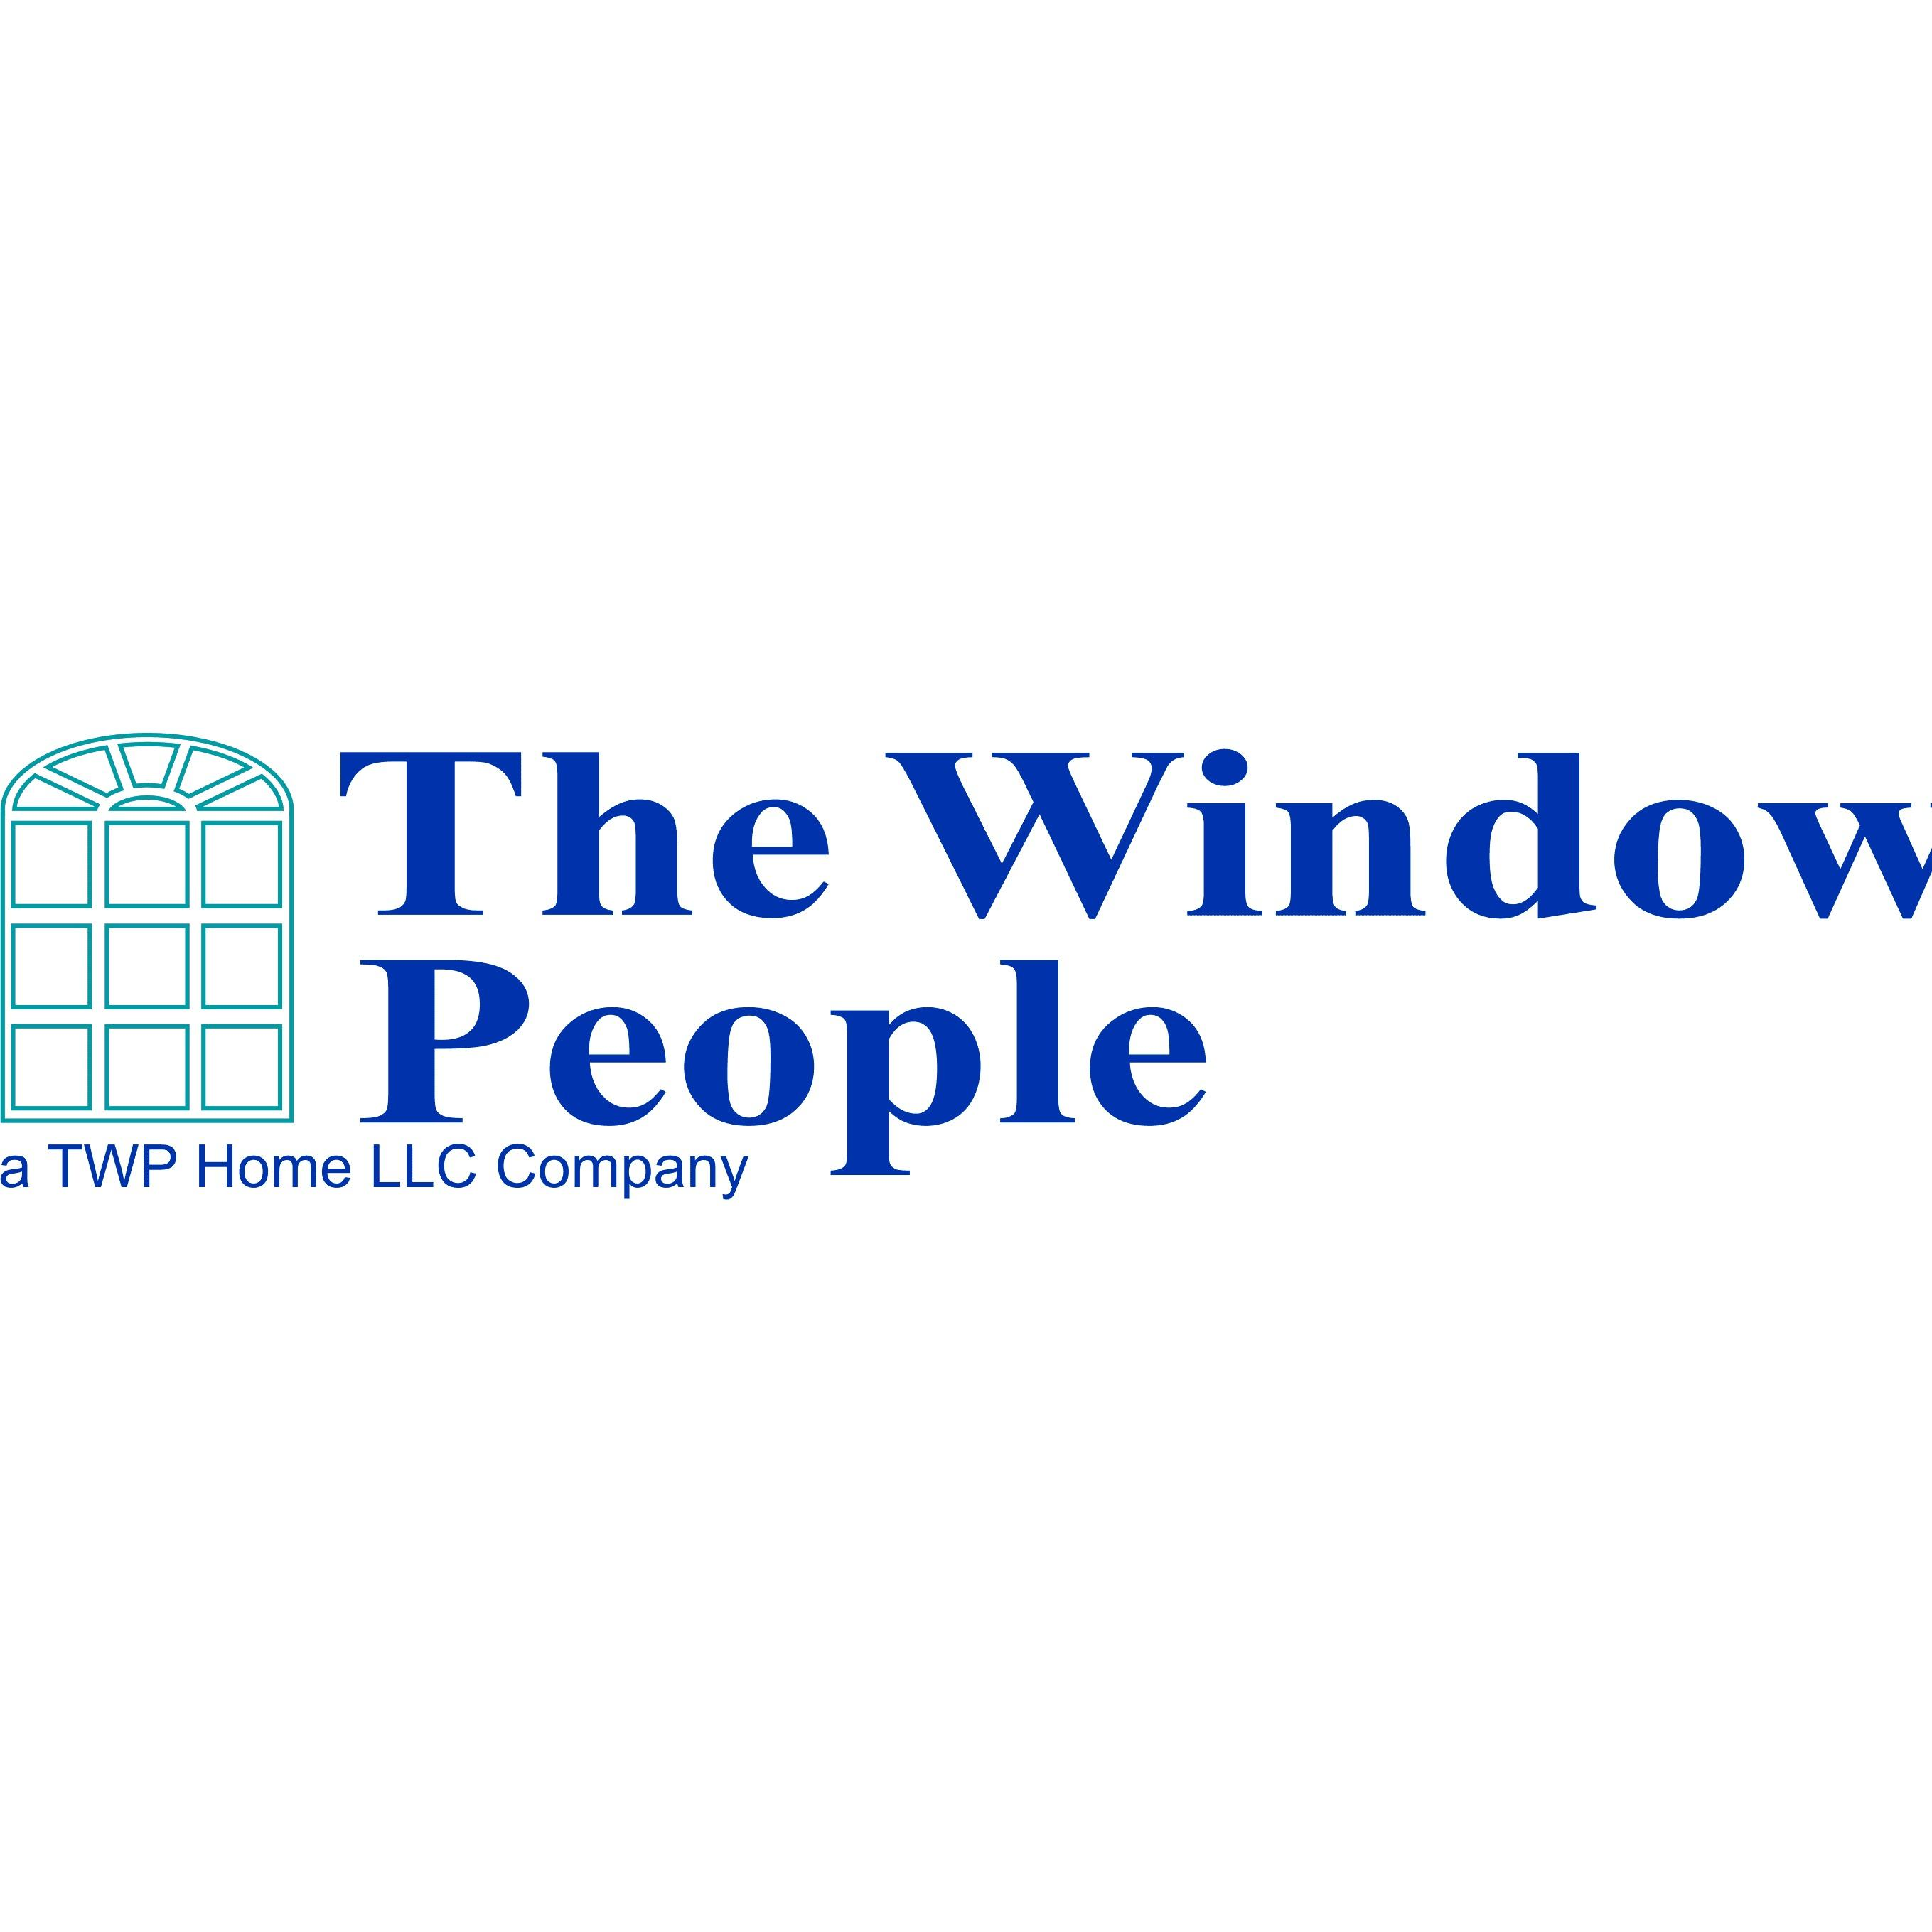 The Window People